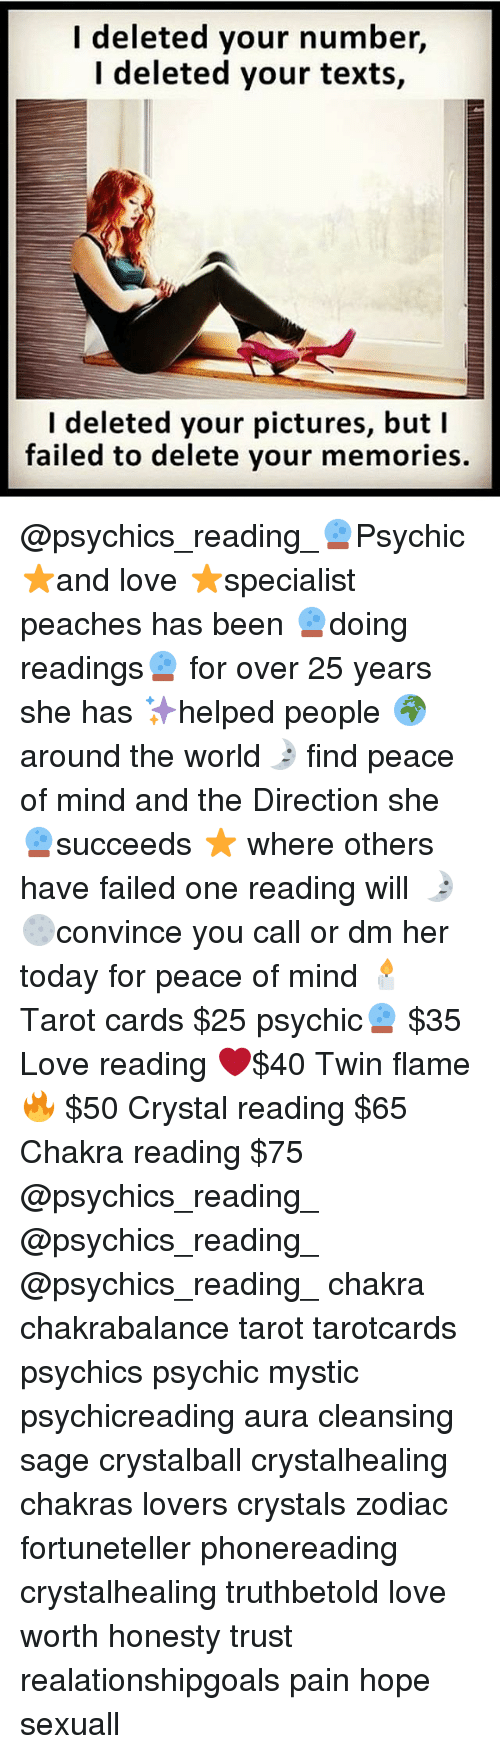 Love, Memes, and Pictures: I deleted your number,  I deleted your texts,  I deleted your pictures, but I  failed to delete your memories. @psychics_reading_🔮Psychic ⭐️and love ⭐specialist peaches has been 🔮doing readings🔮 for over 25 years she has ✨helped people 🌍around the world🌛 find peace of mind and the Direction she 🔮succeeds ⭐ where others have failed one reading will 🌛🌕convince you call or dm her today for peace of mind 🕯 Tarot cards $25 psychic🔮 $35 Love reading ❤️$40 Twin flame 🔥 $50 Crystal reading $65 Chakra reading $75 @psychics_reading_ @psychics_reading_ @psychics_reading_ chakra chakrabalance tarot tarotcards psychics psychic mystic psychicreading aura cleansing sage crystalball crystalhealing chakras lovers crystals zodiac fortuneteller phonereading crystalhealing truthbetold love worth honesty trust realationshipgoals pain hope sexuall